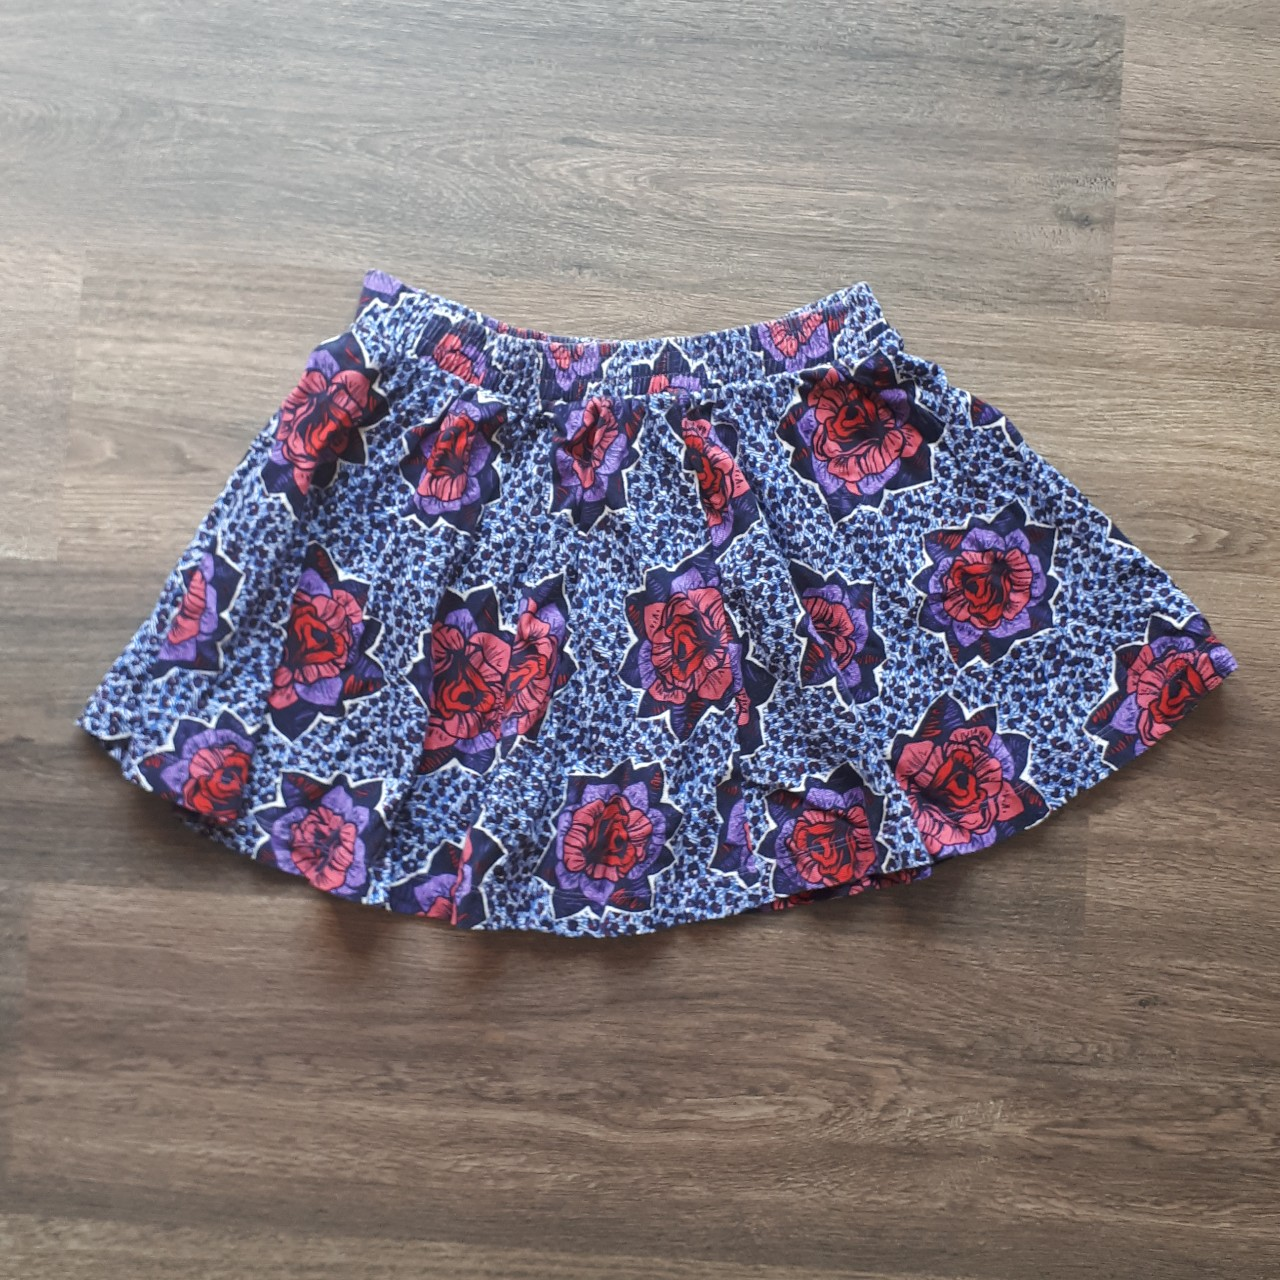 Zara cotton floral mini skirt. Super cute and Depop